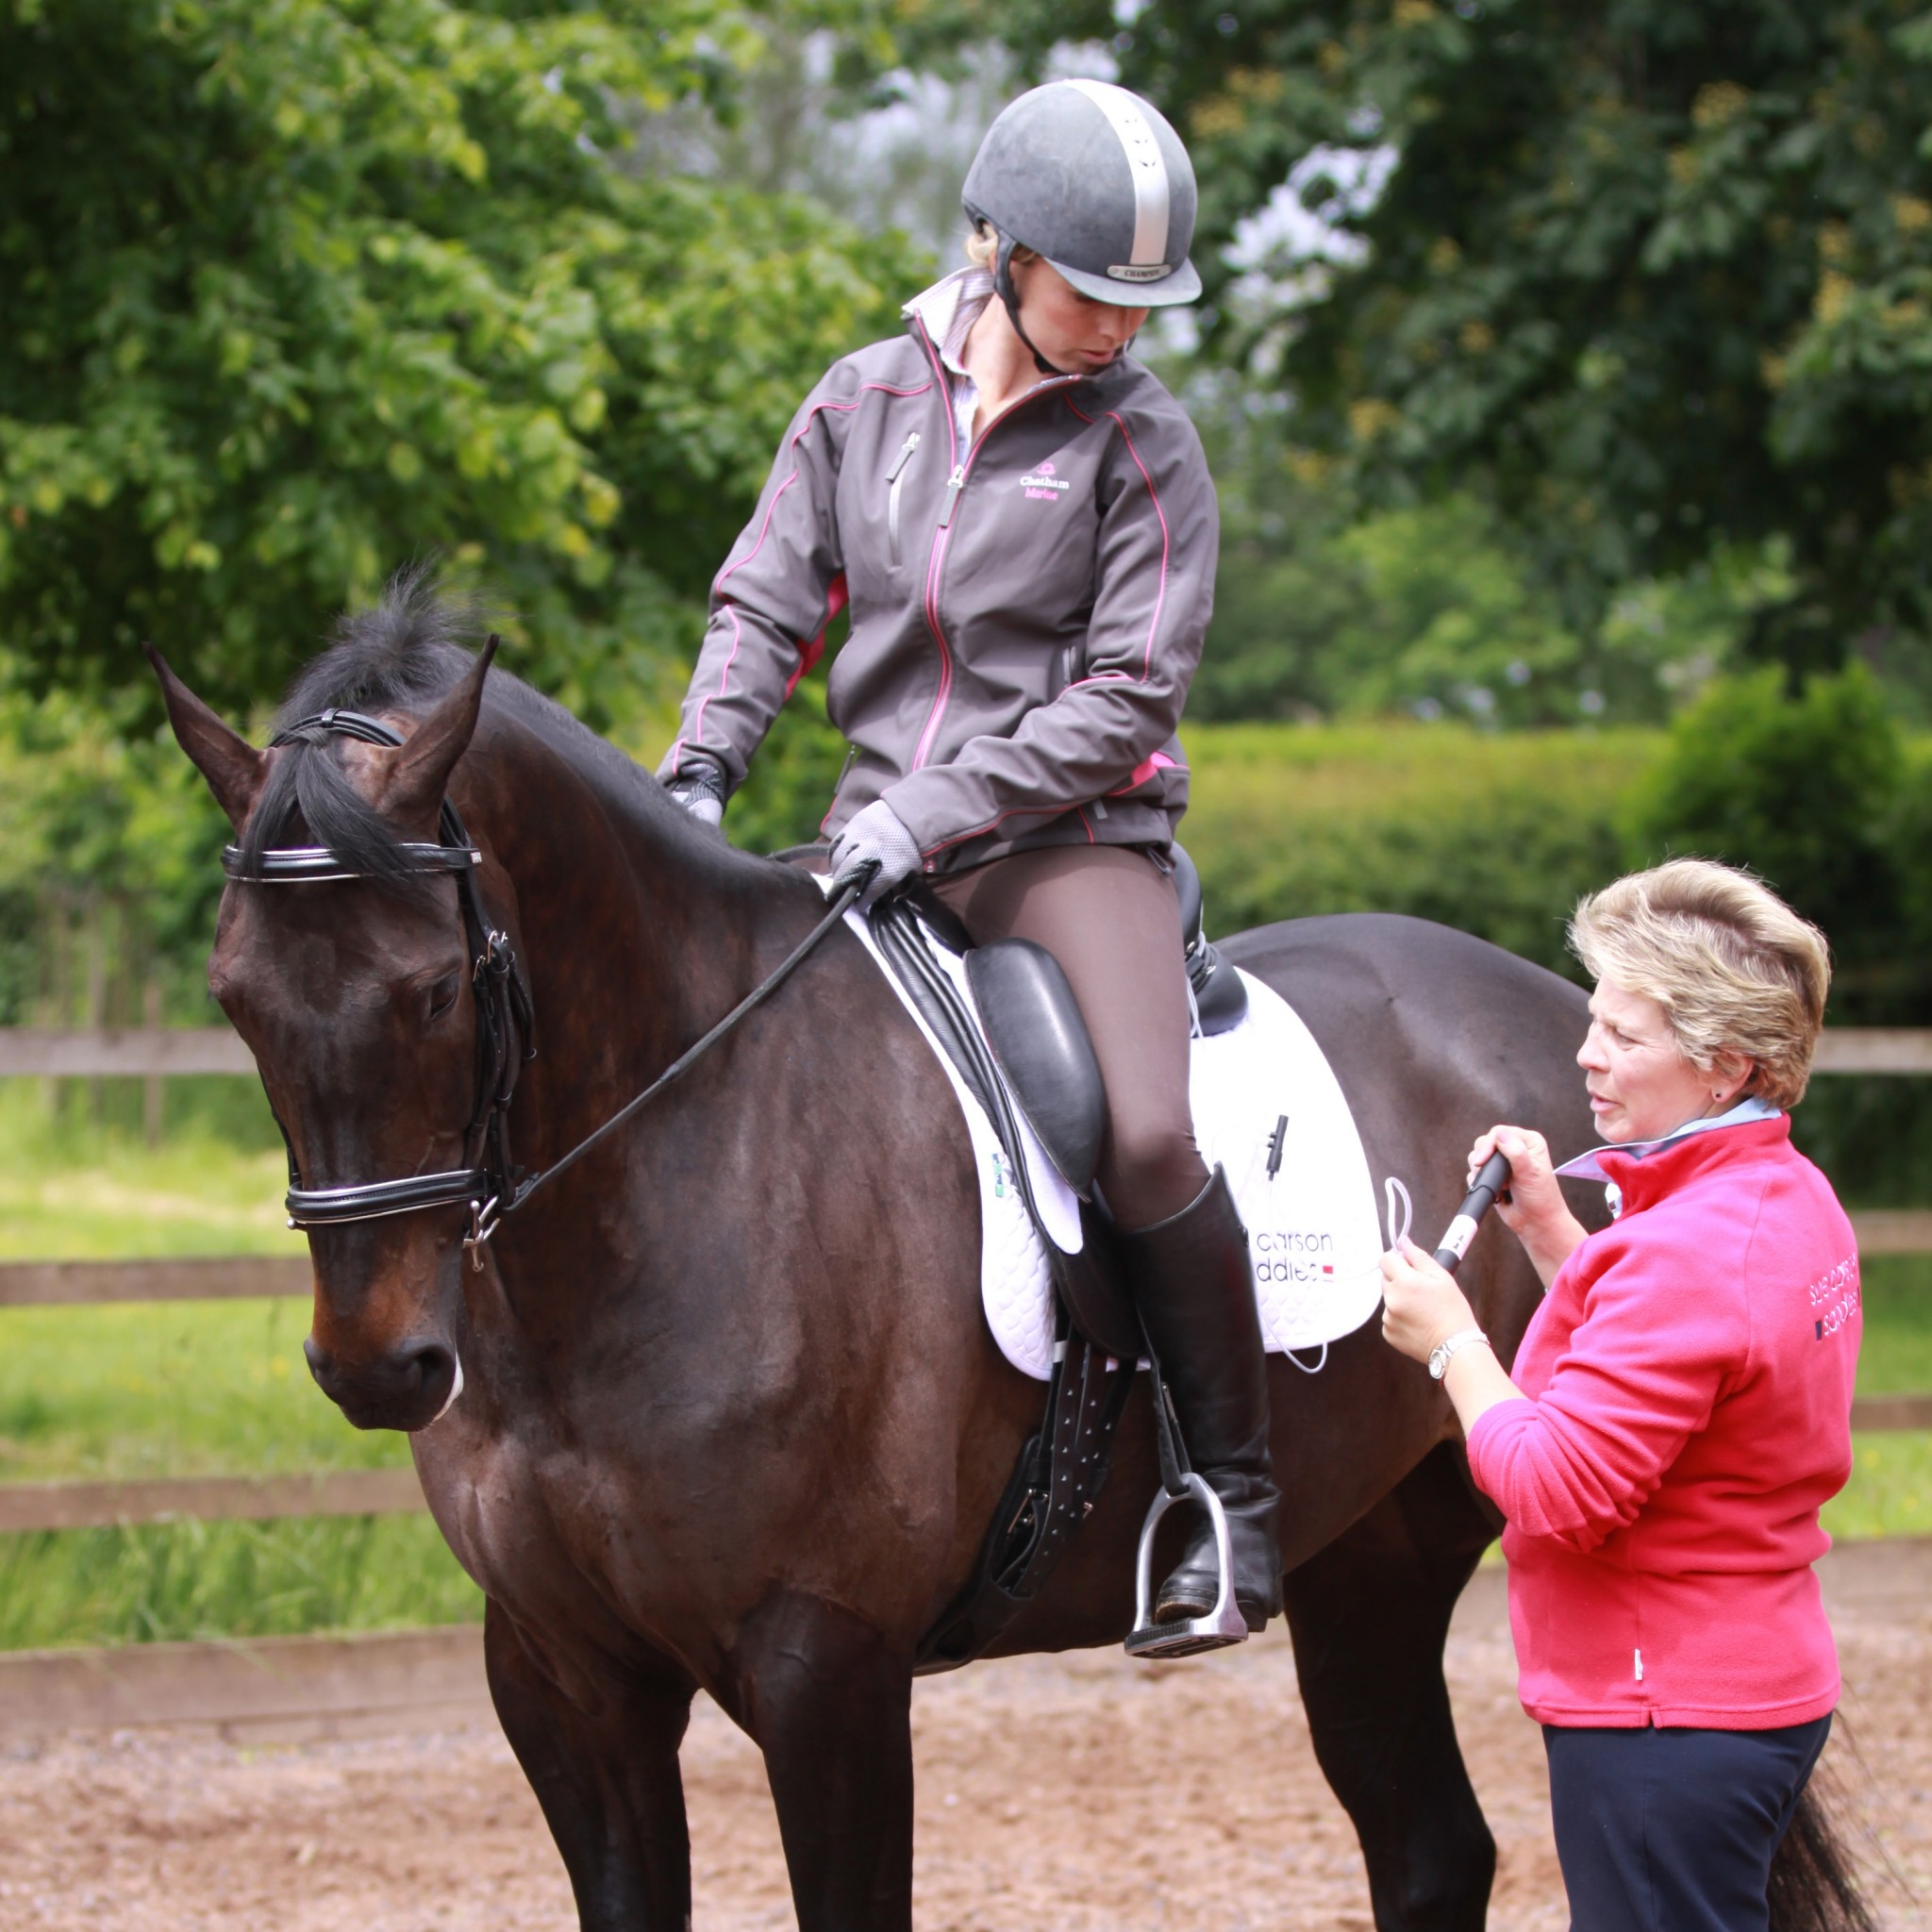 Sue Carson fits a new saddle for a client - Saddlefitting : your questions answered